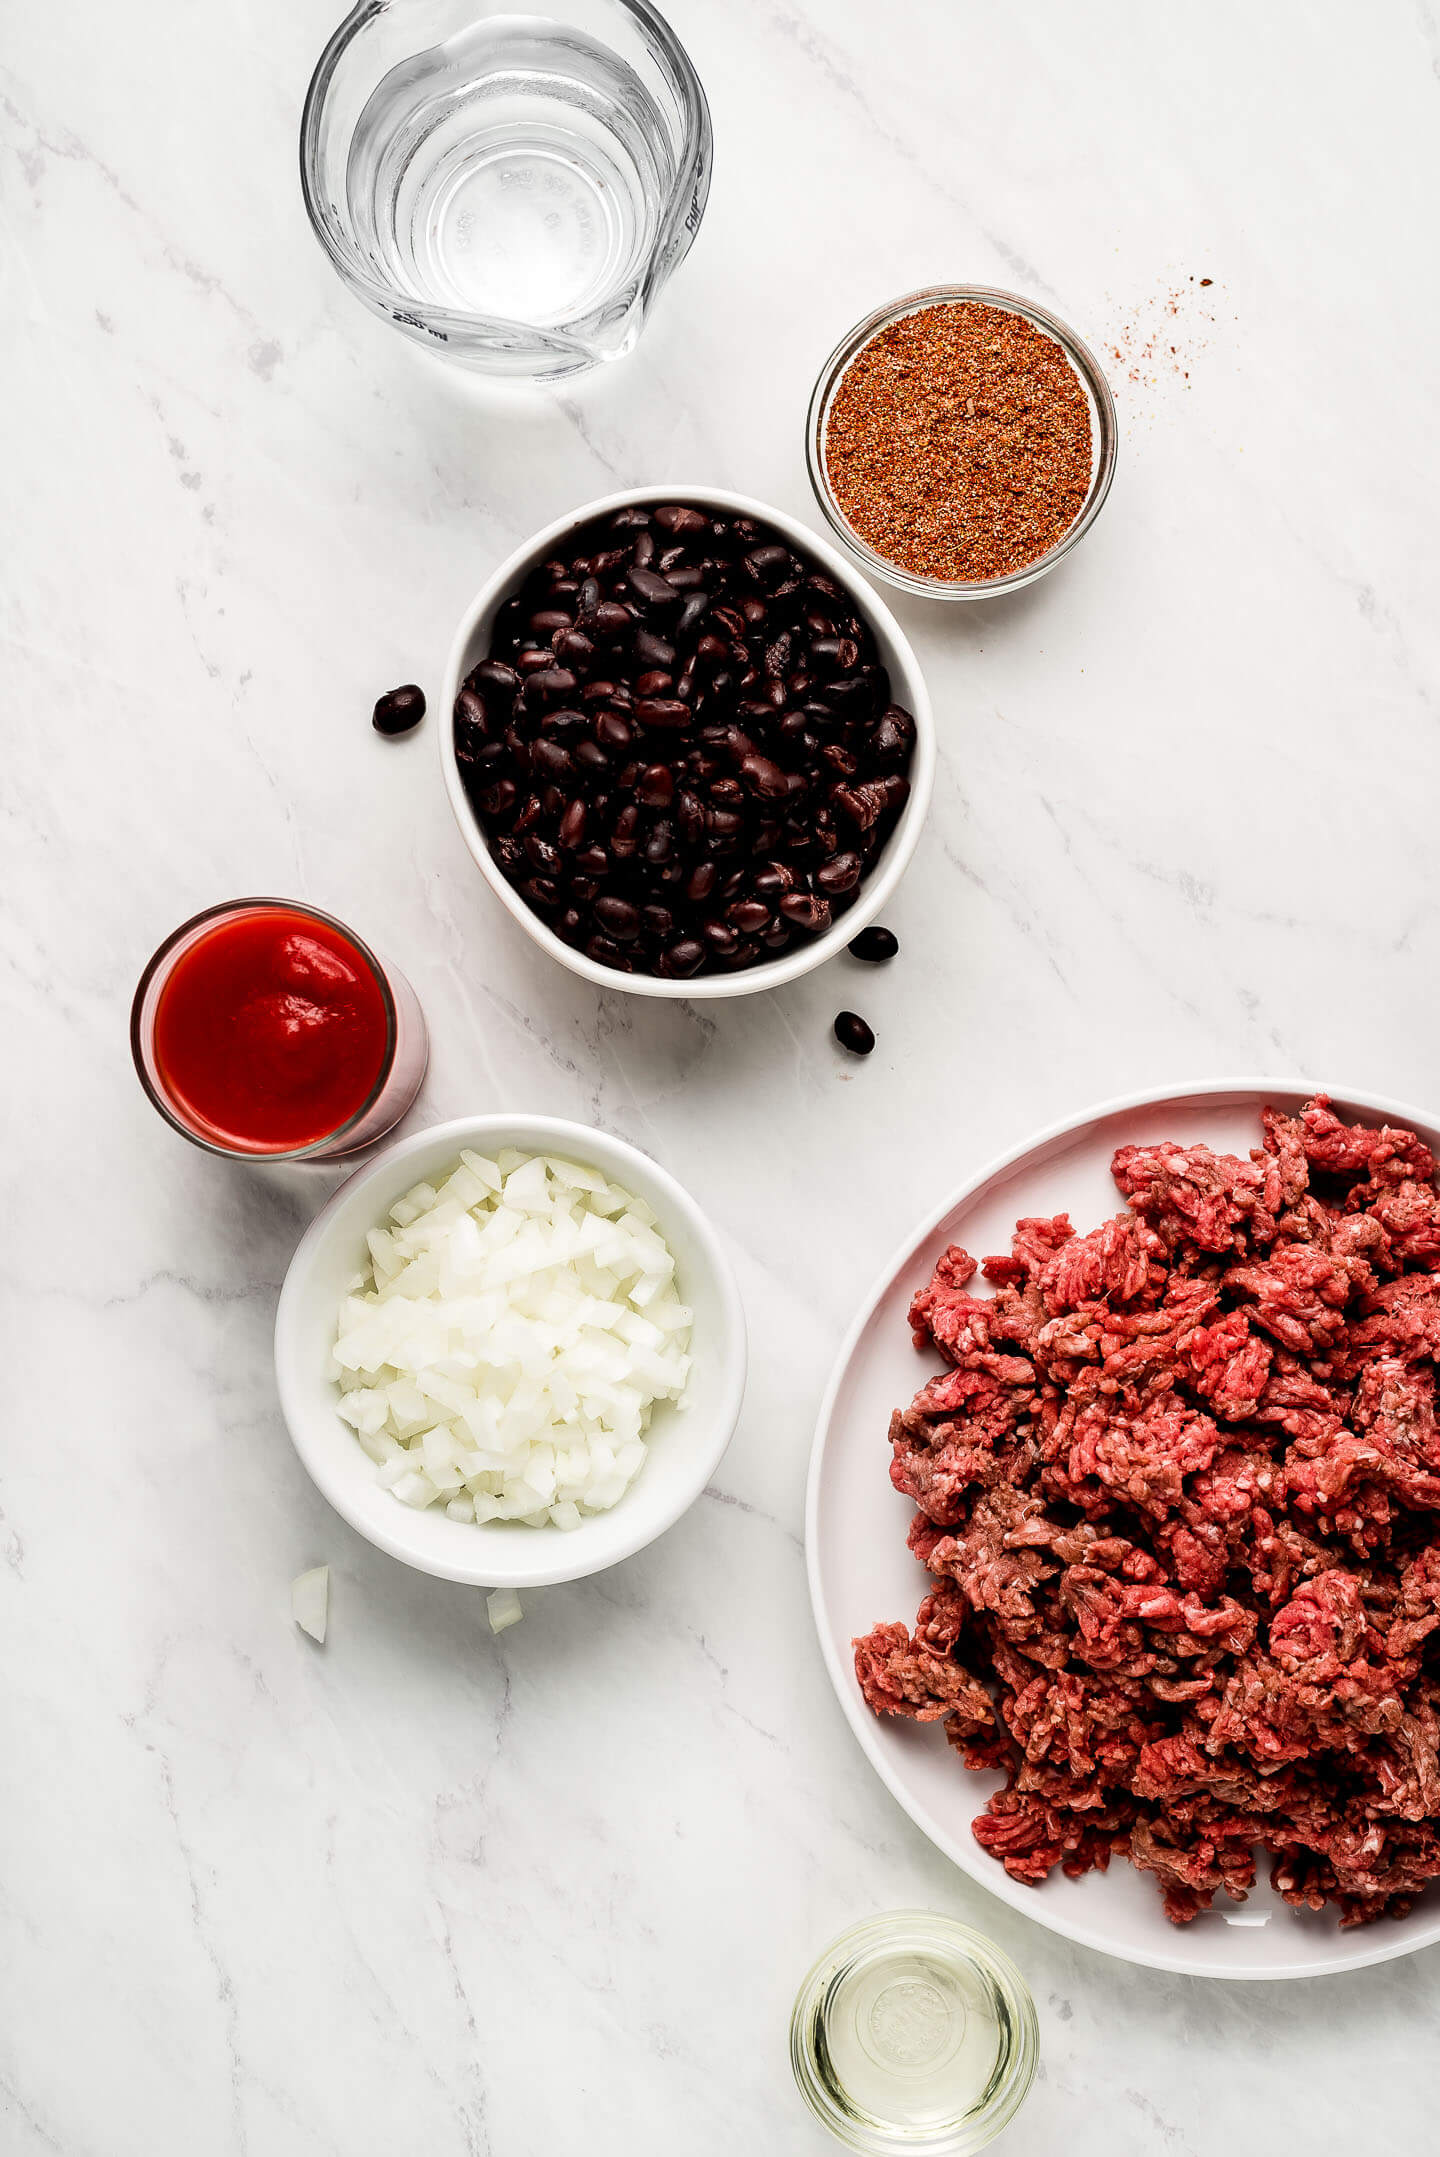 Ingredients on a marble surface: water, taco seasoning, black beans, tomato sauce, onions, oil, and ground beef.